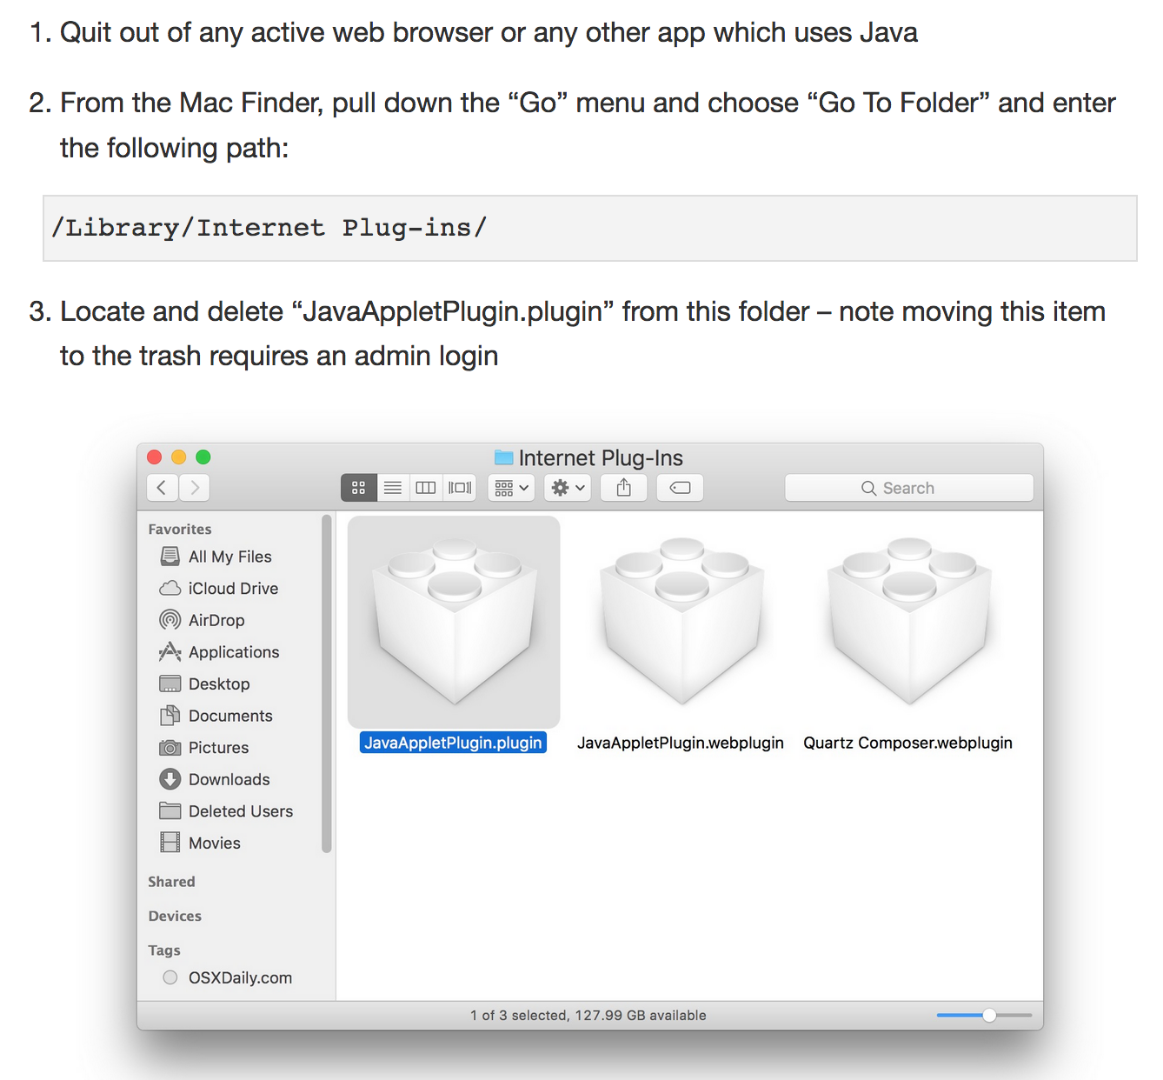 Can't install legacy Java 6 bc 'a… - Apple Community